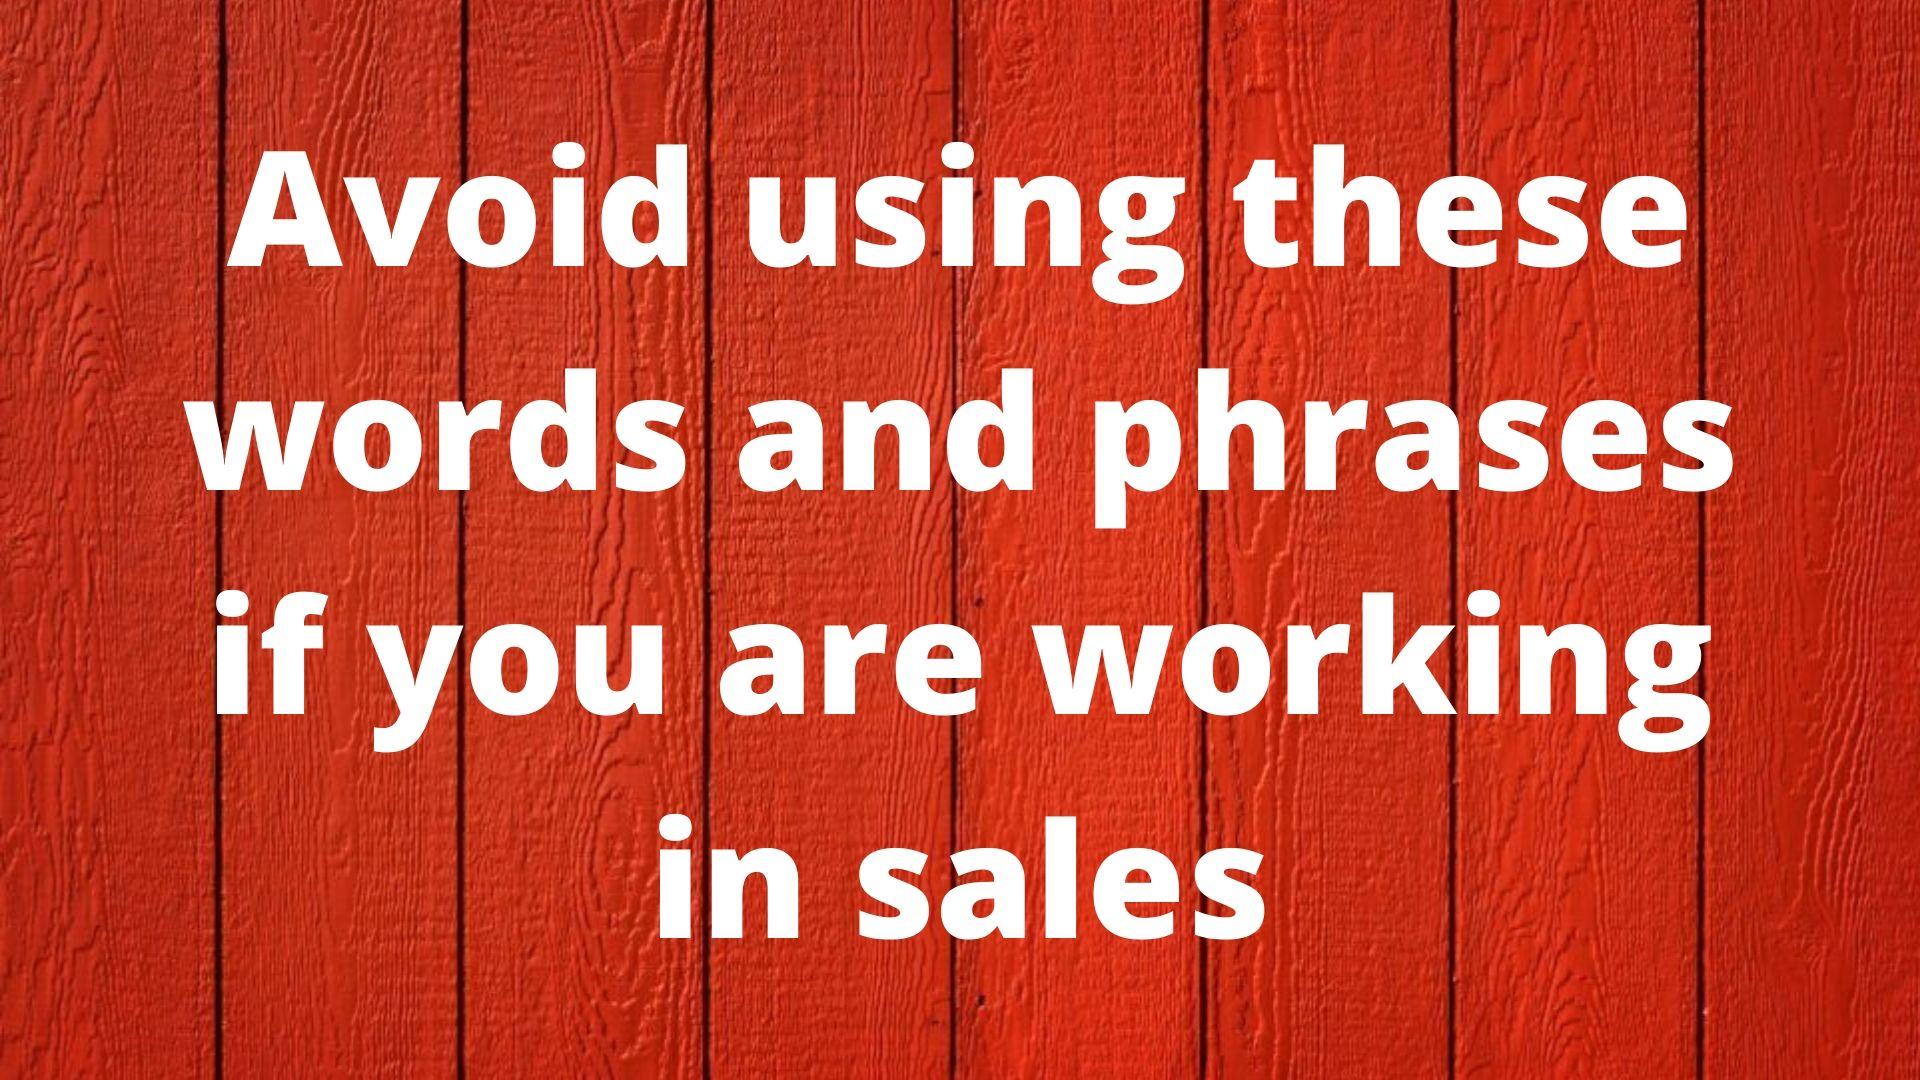 Avoid Using These Words and Phrases If You Are Working in Sales